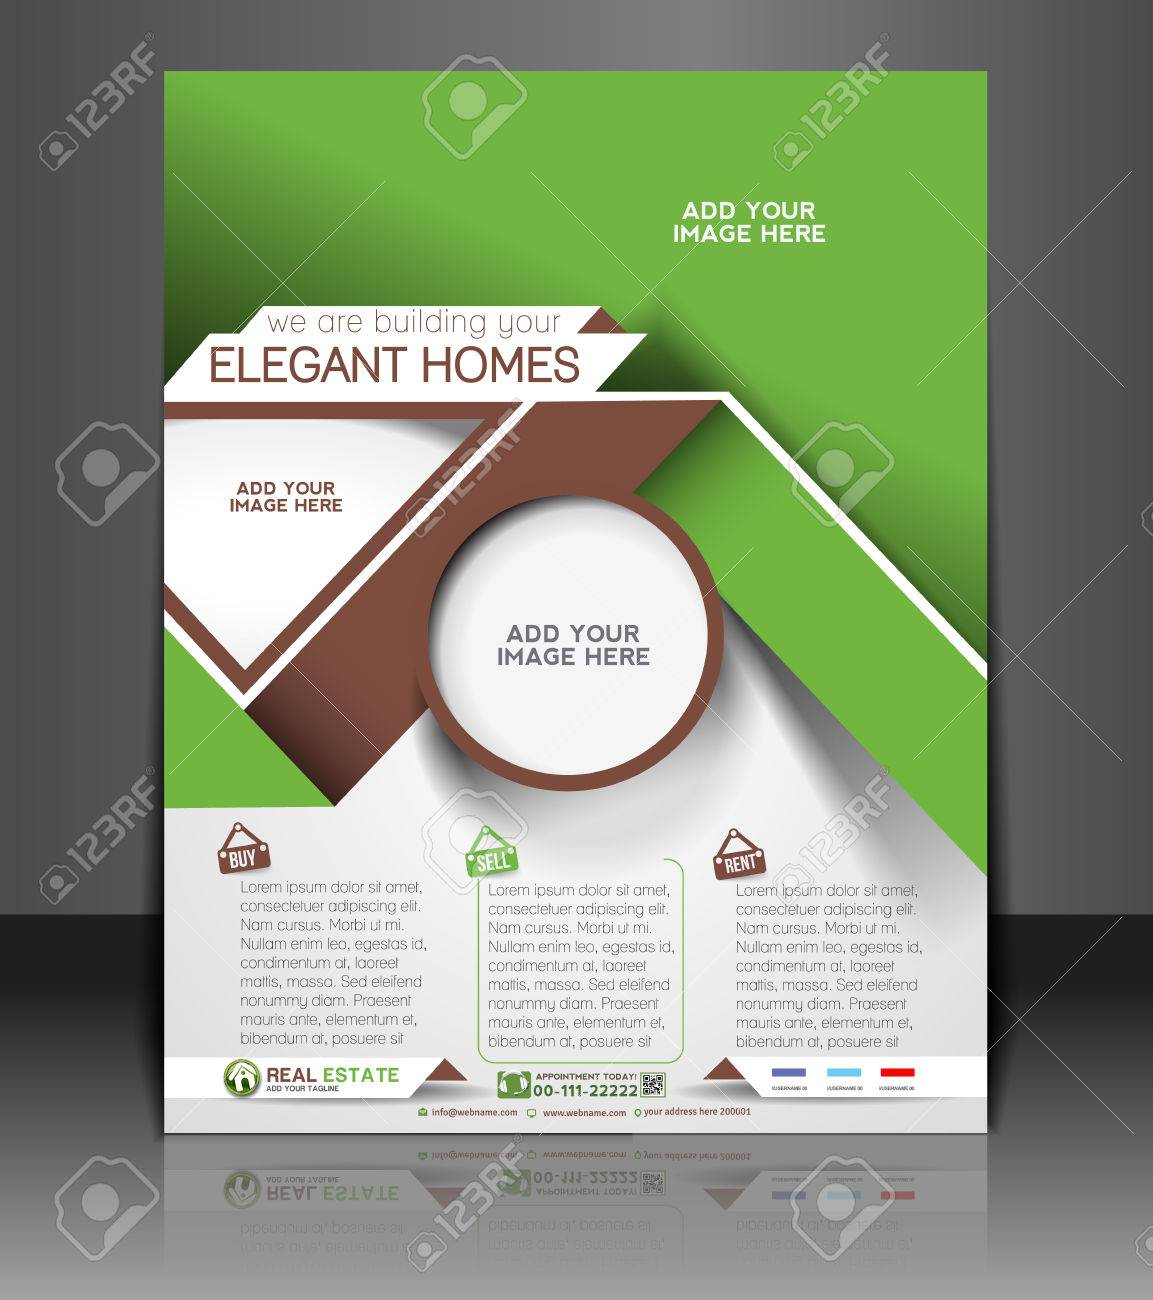 Real Estate Agent Flyer Poster Template Royalty Free Cliparts - Real estate agent flyer template free